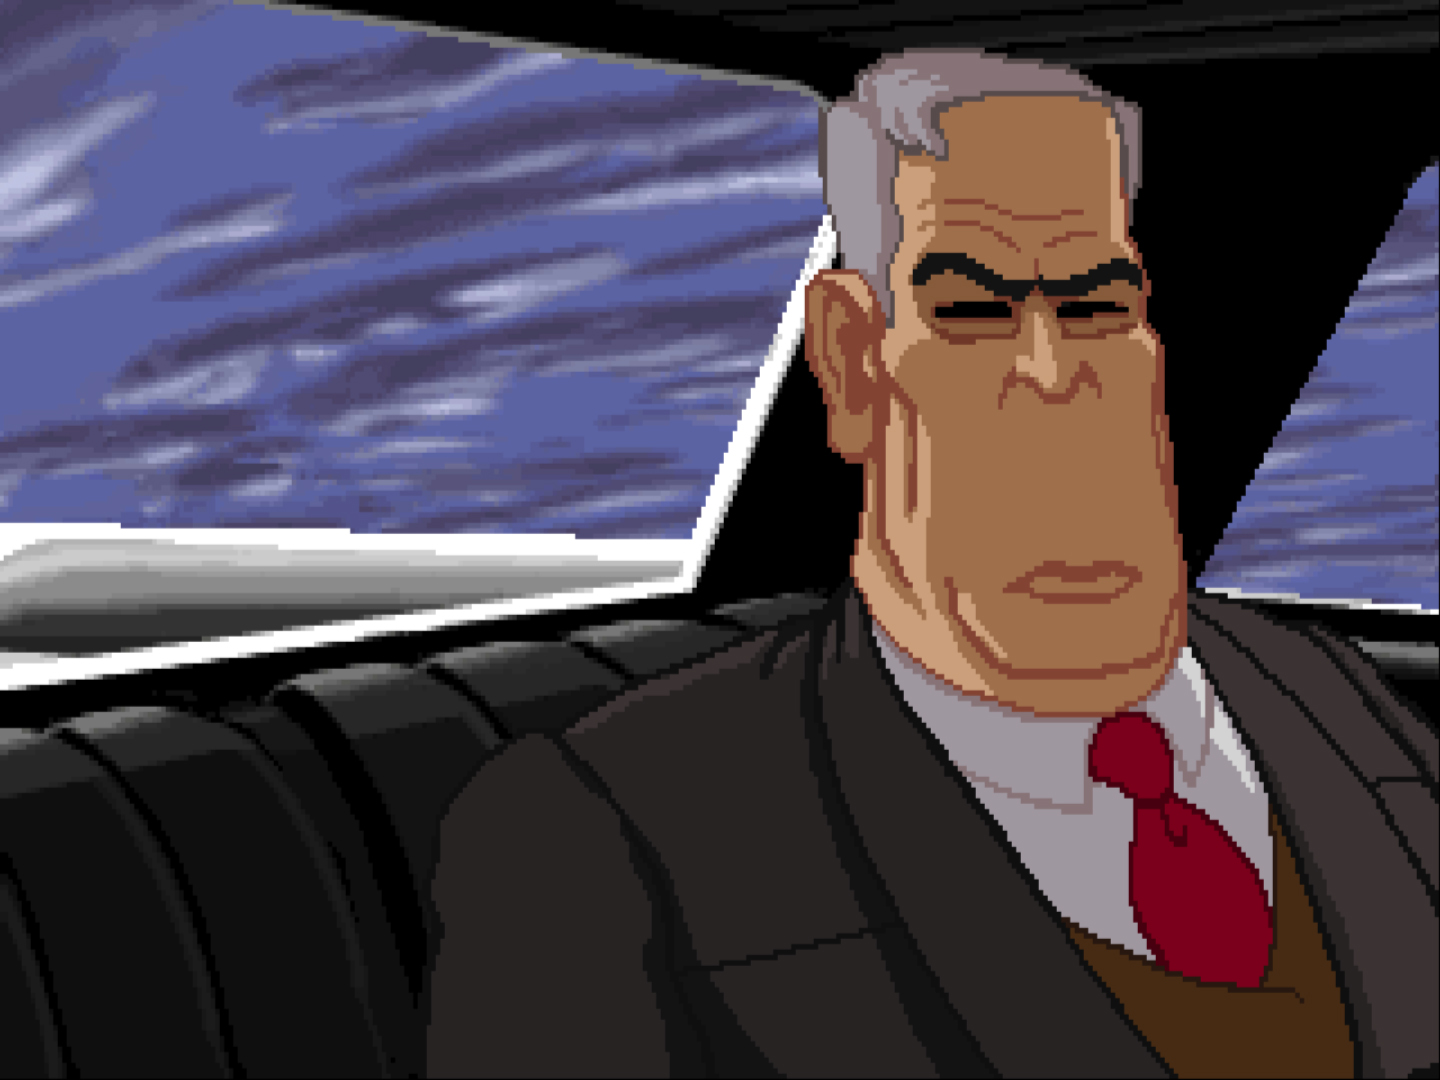 Full Throttle screenshot 3.